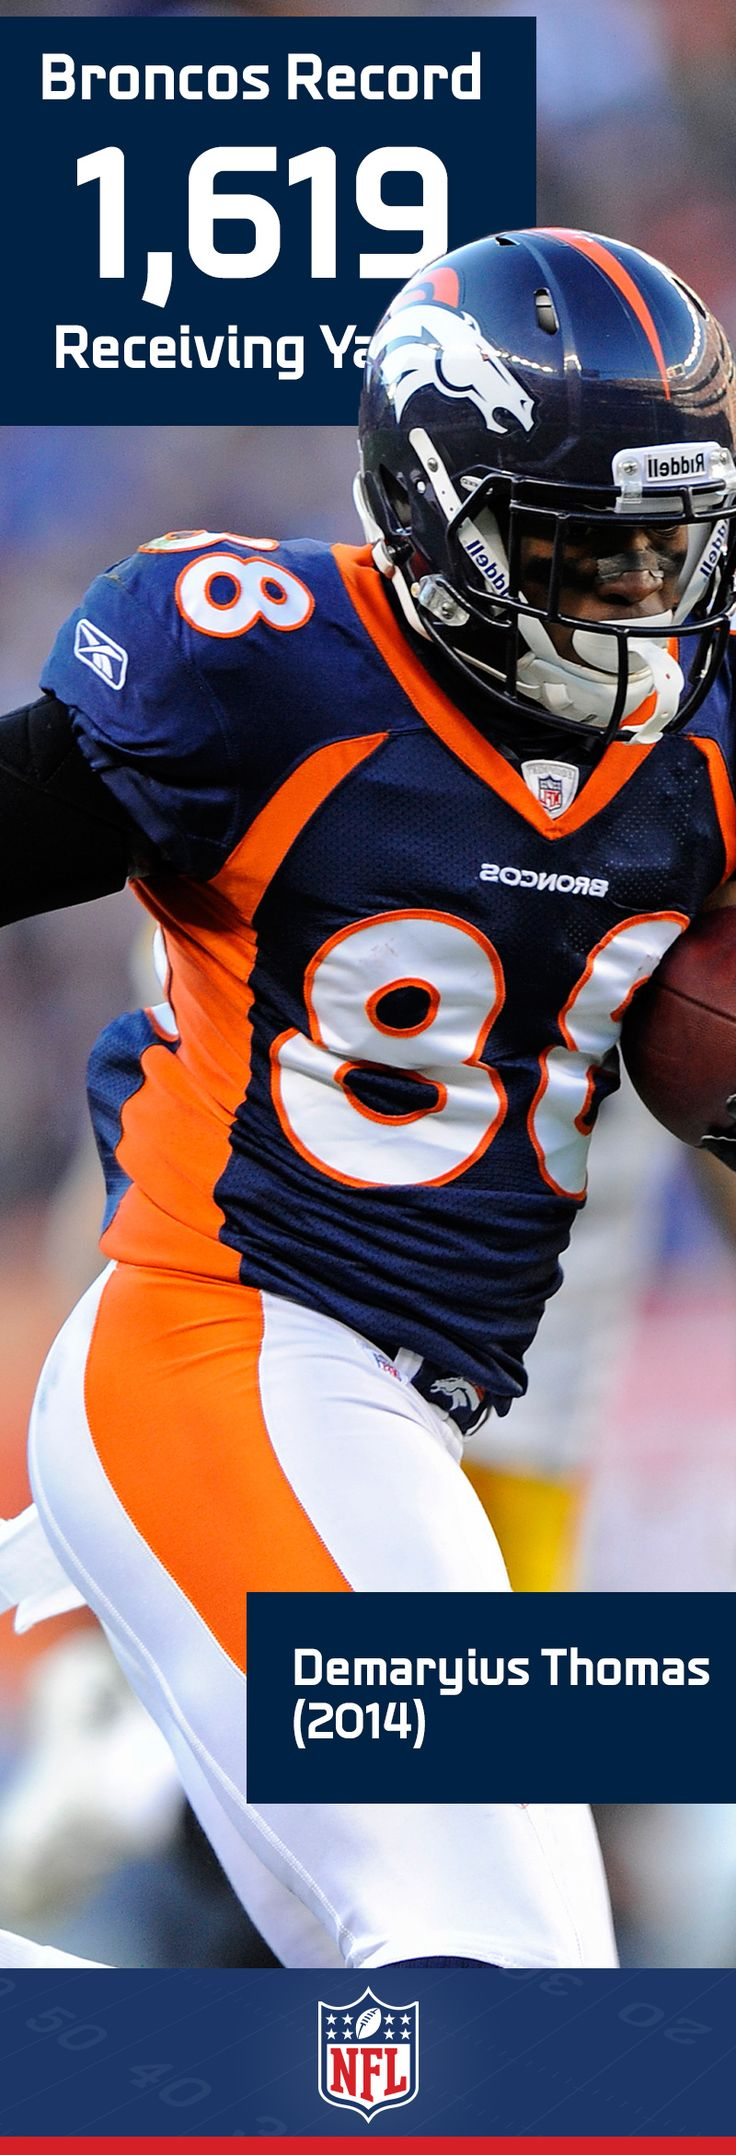 Receiver Demaryius Thomas lit up the league and set a Broncos record with 1,619 receiving yards in 2014. 226 of those yards came in one game against the Cards last October – another franchise record.